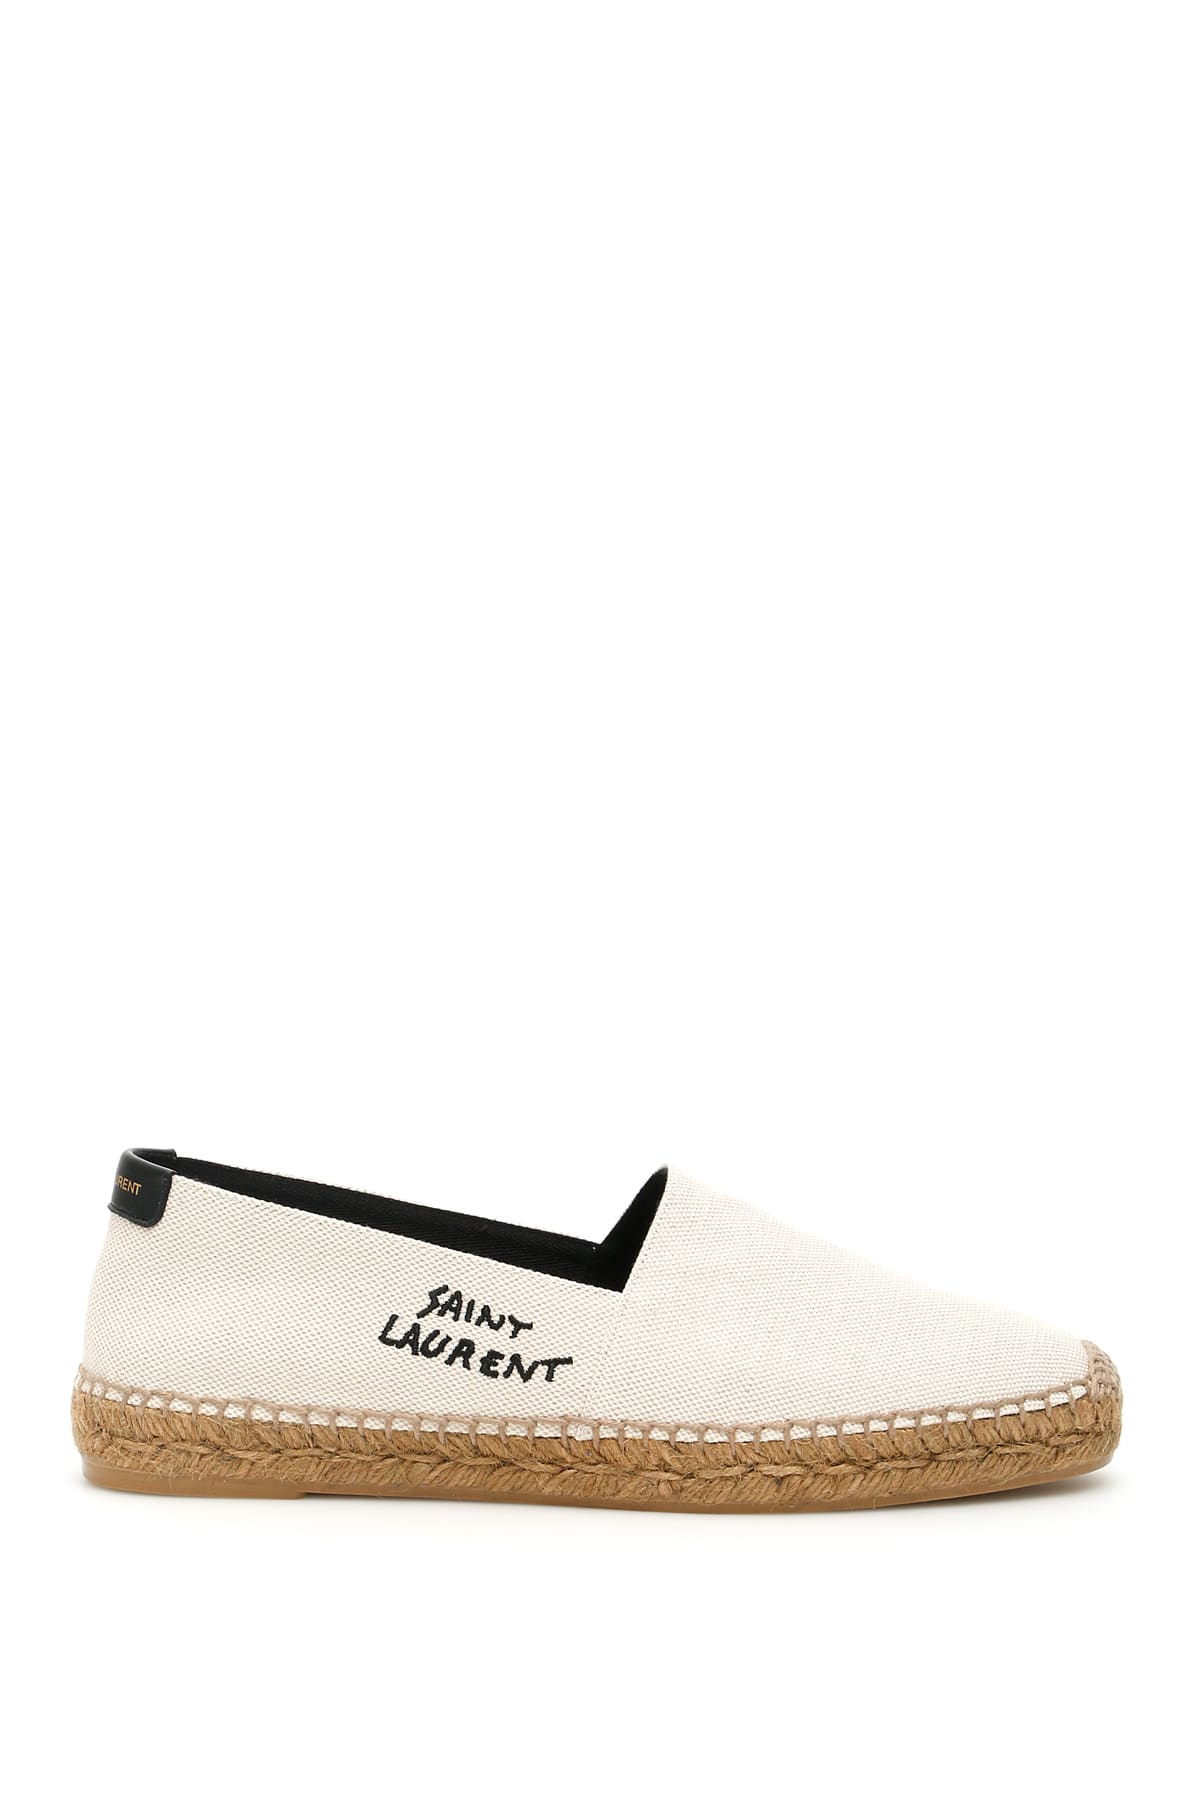 SAINT LAURENT SIGNATURE CANVAS ESPADRILLES 41 White, Beige Cotton, Linen